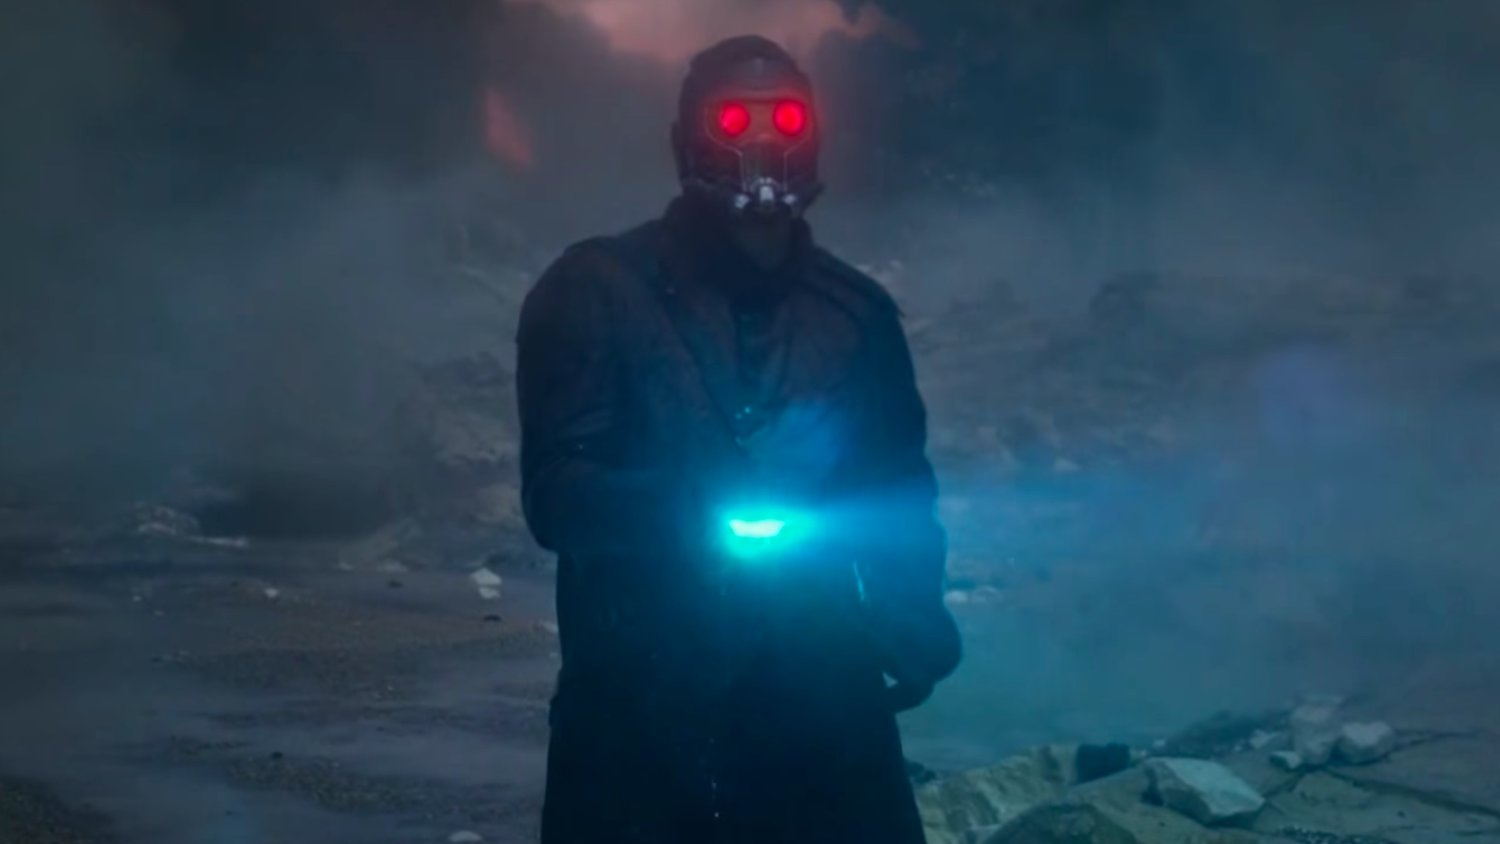 James Gunn Says the Intro of GUARDIANS OF THE GALAXY VOL. 2 Will Be Cooler Than the First Film's